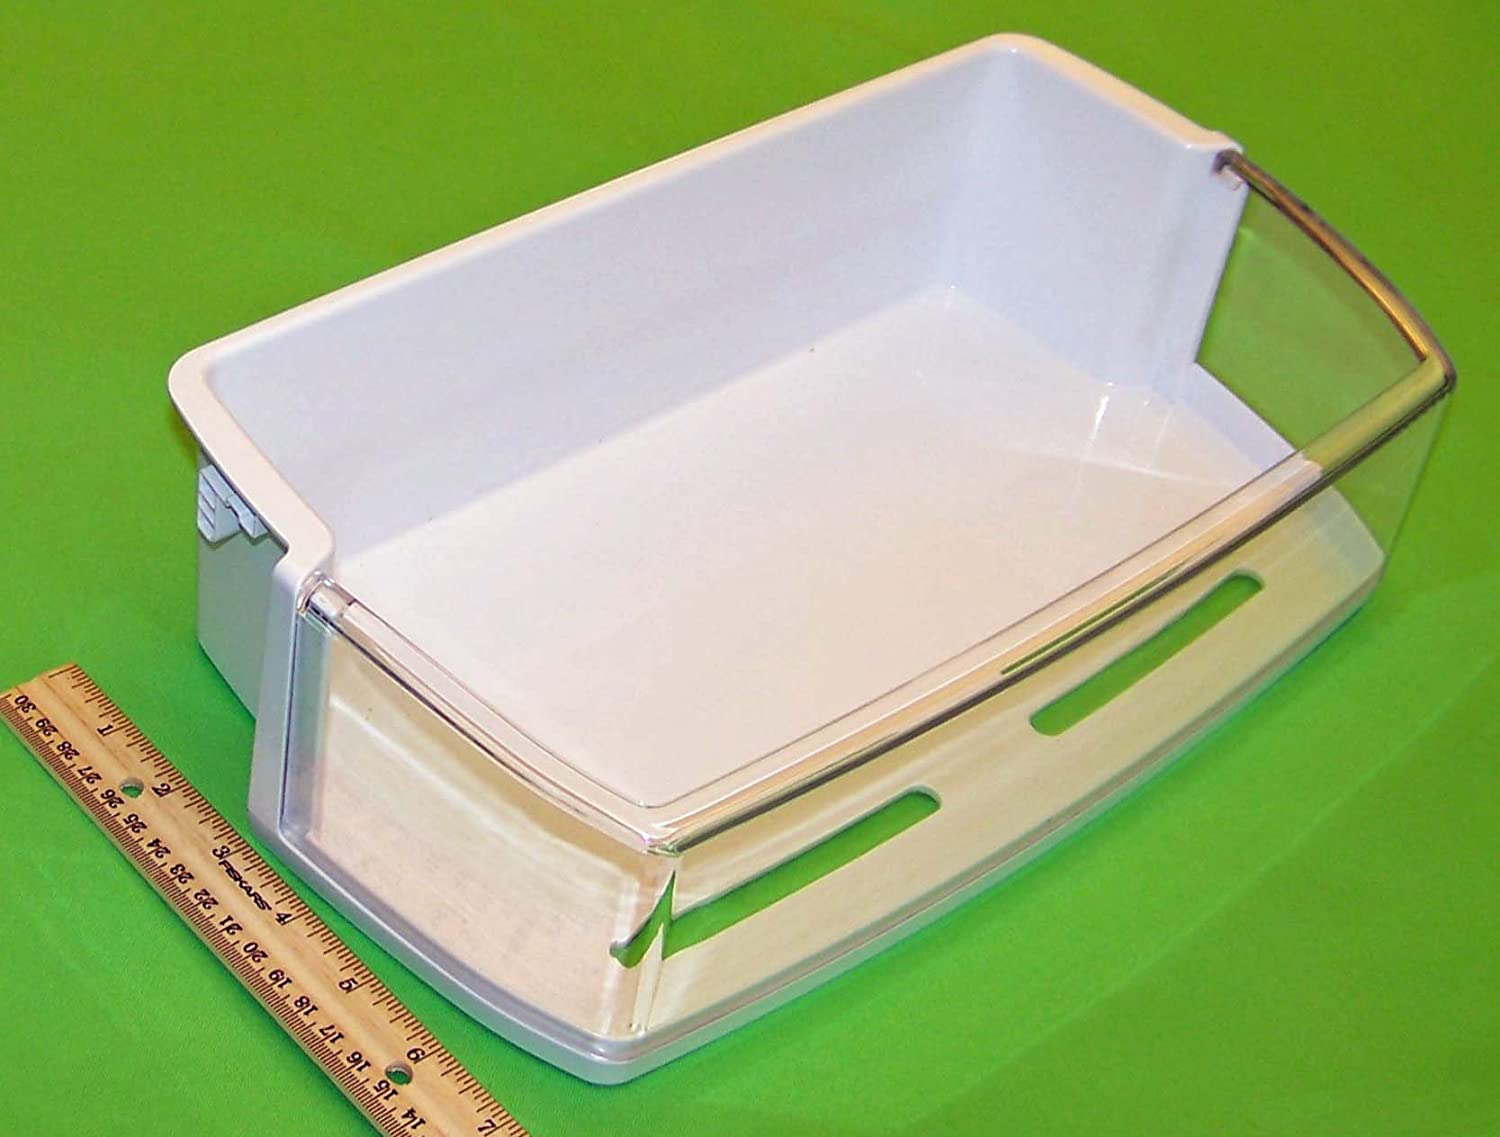 OEM LG Refrigerator Door Bin Basket Shelf Tray Specifically For LFX28968ST, LFX28968ST00